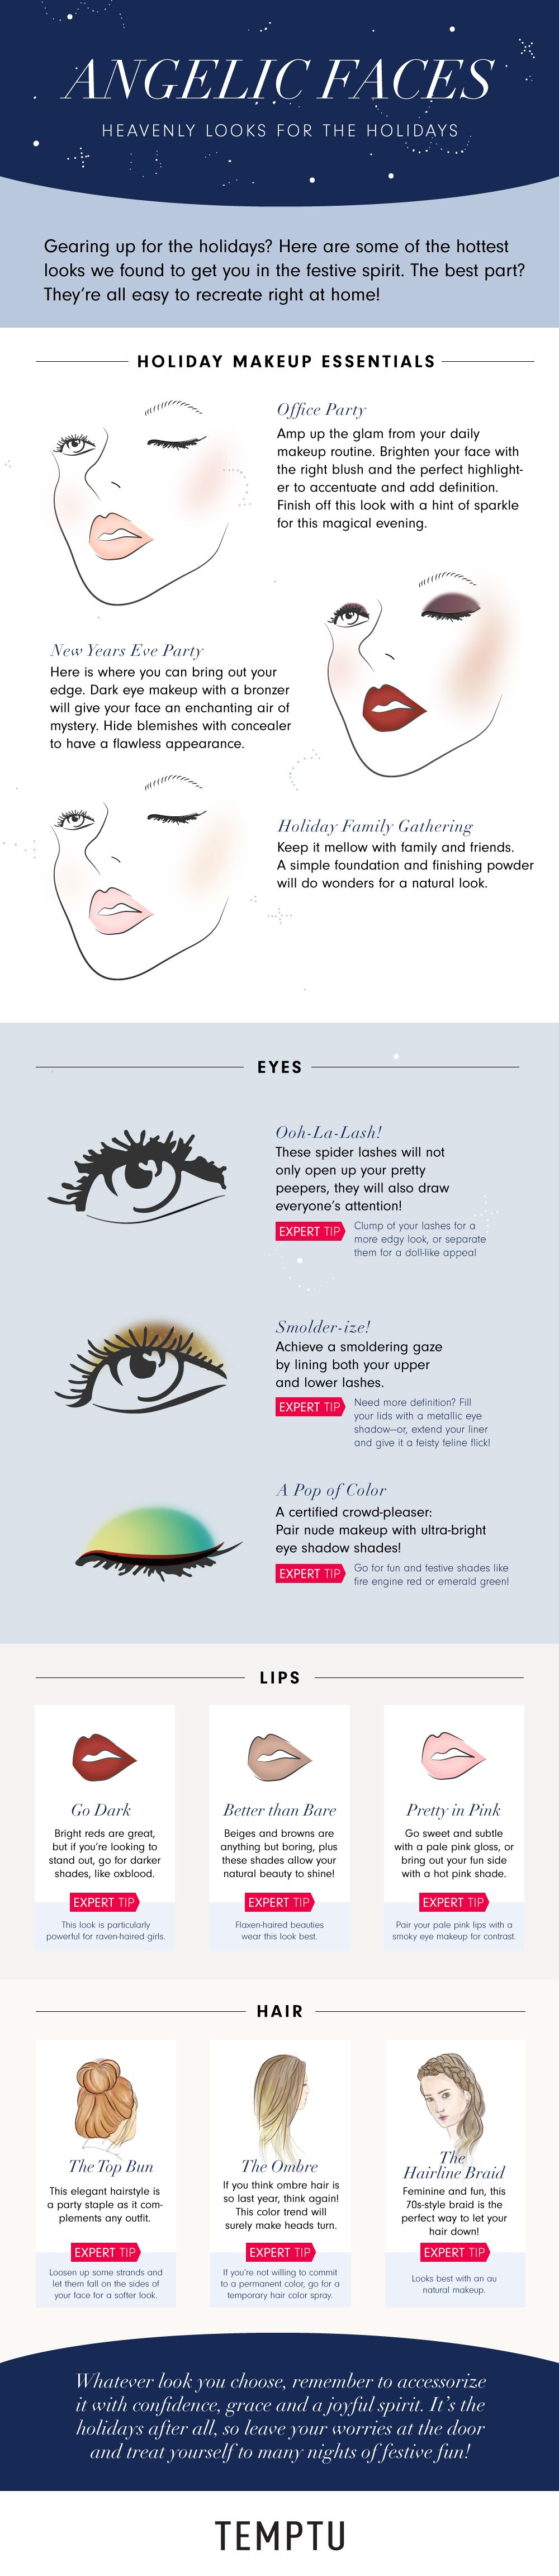 Angelic Faces: Heavenly Looks For The Holidays #infographic